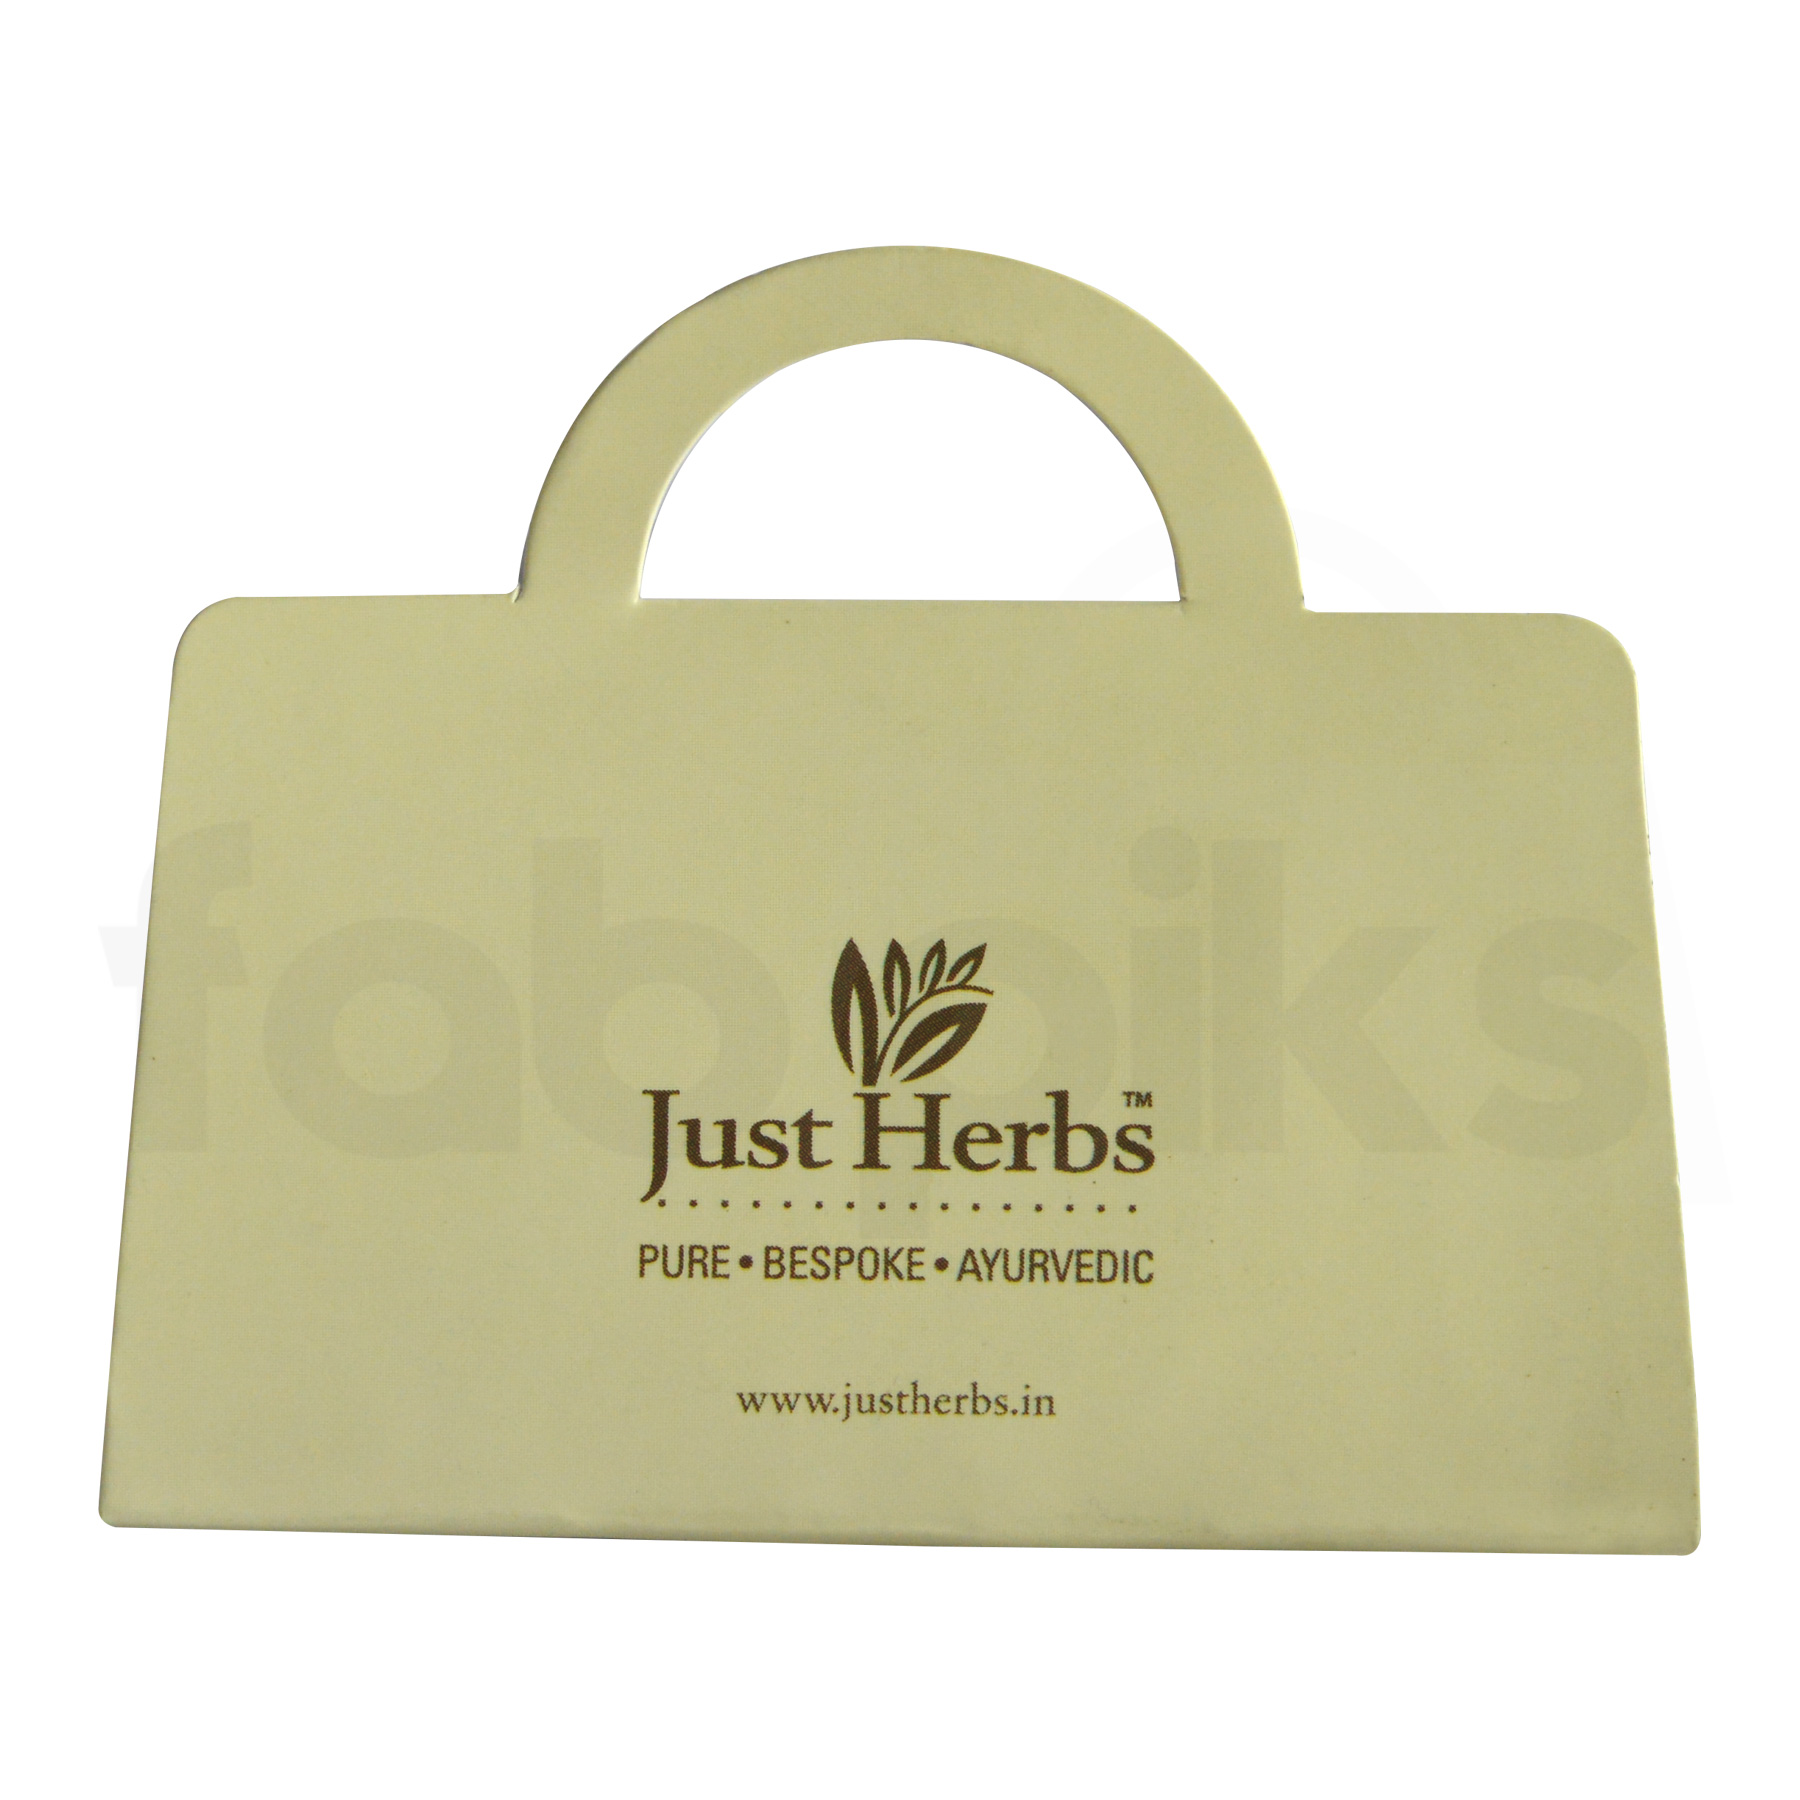 Just Herbs Trial Box